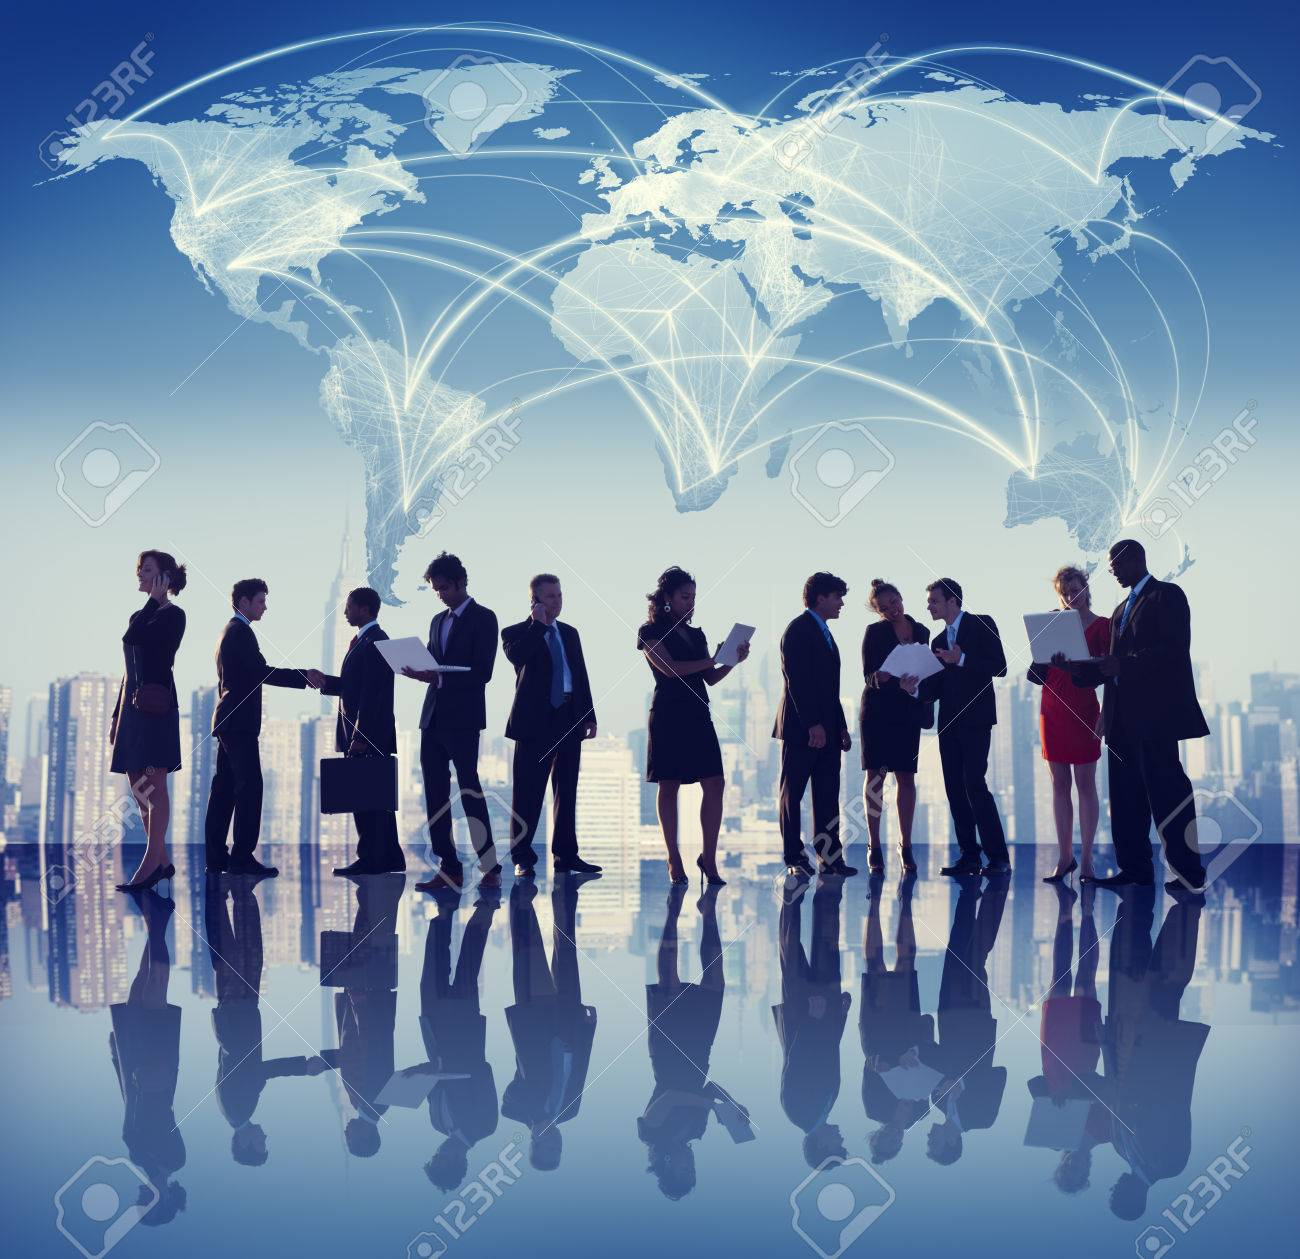 Global Business People Meeting Working City Concept - 34402170